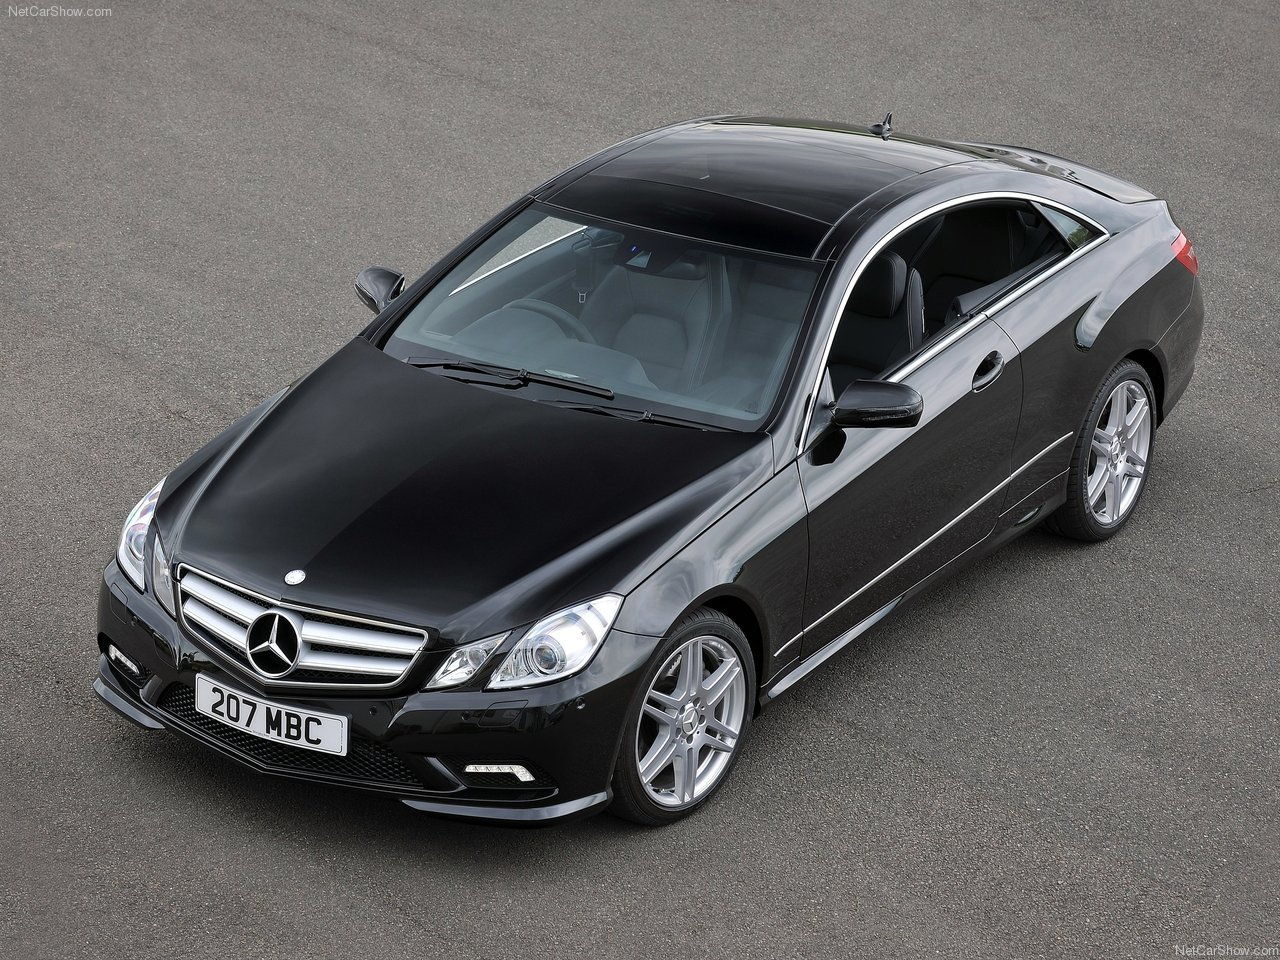 2010 mercedes benz e class coupe uk version mercedes